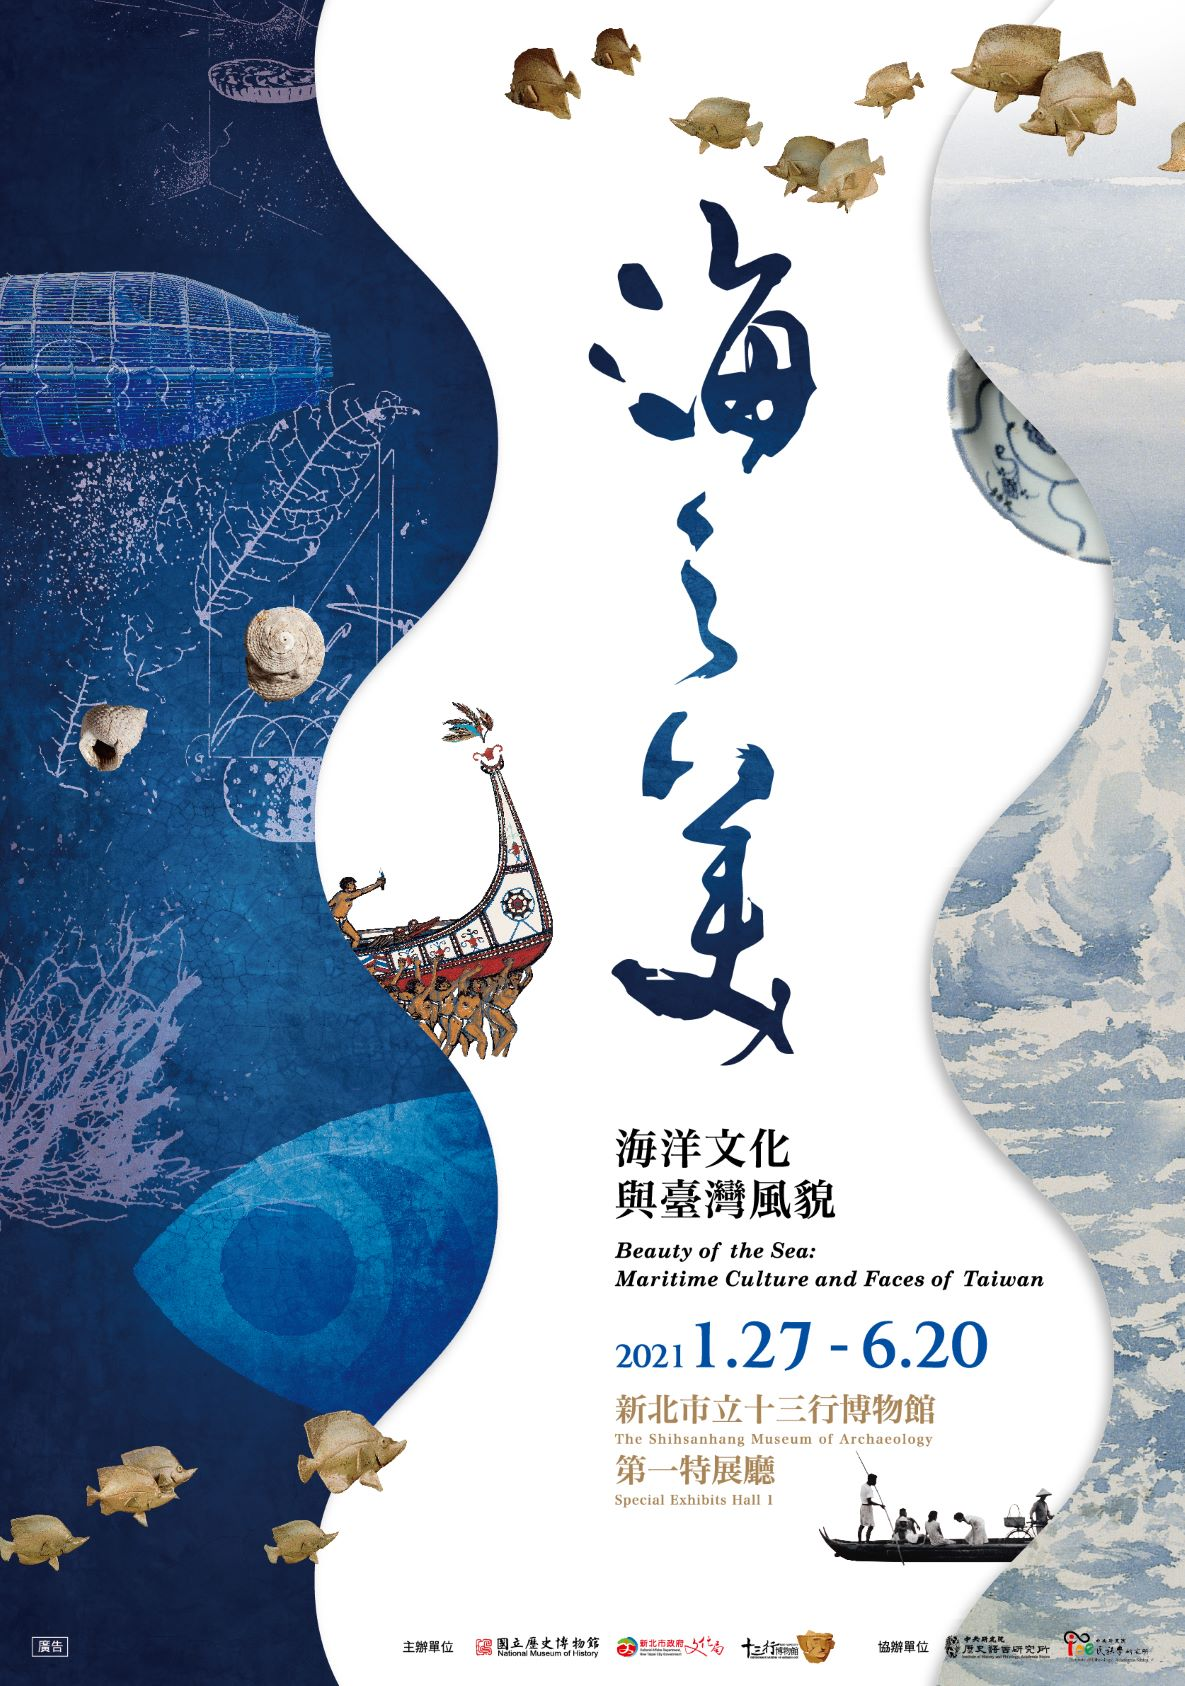 Shihsanhang Museum of Archaeology to hold exhibition on marine culture